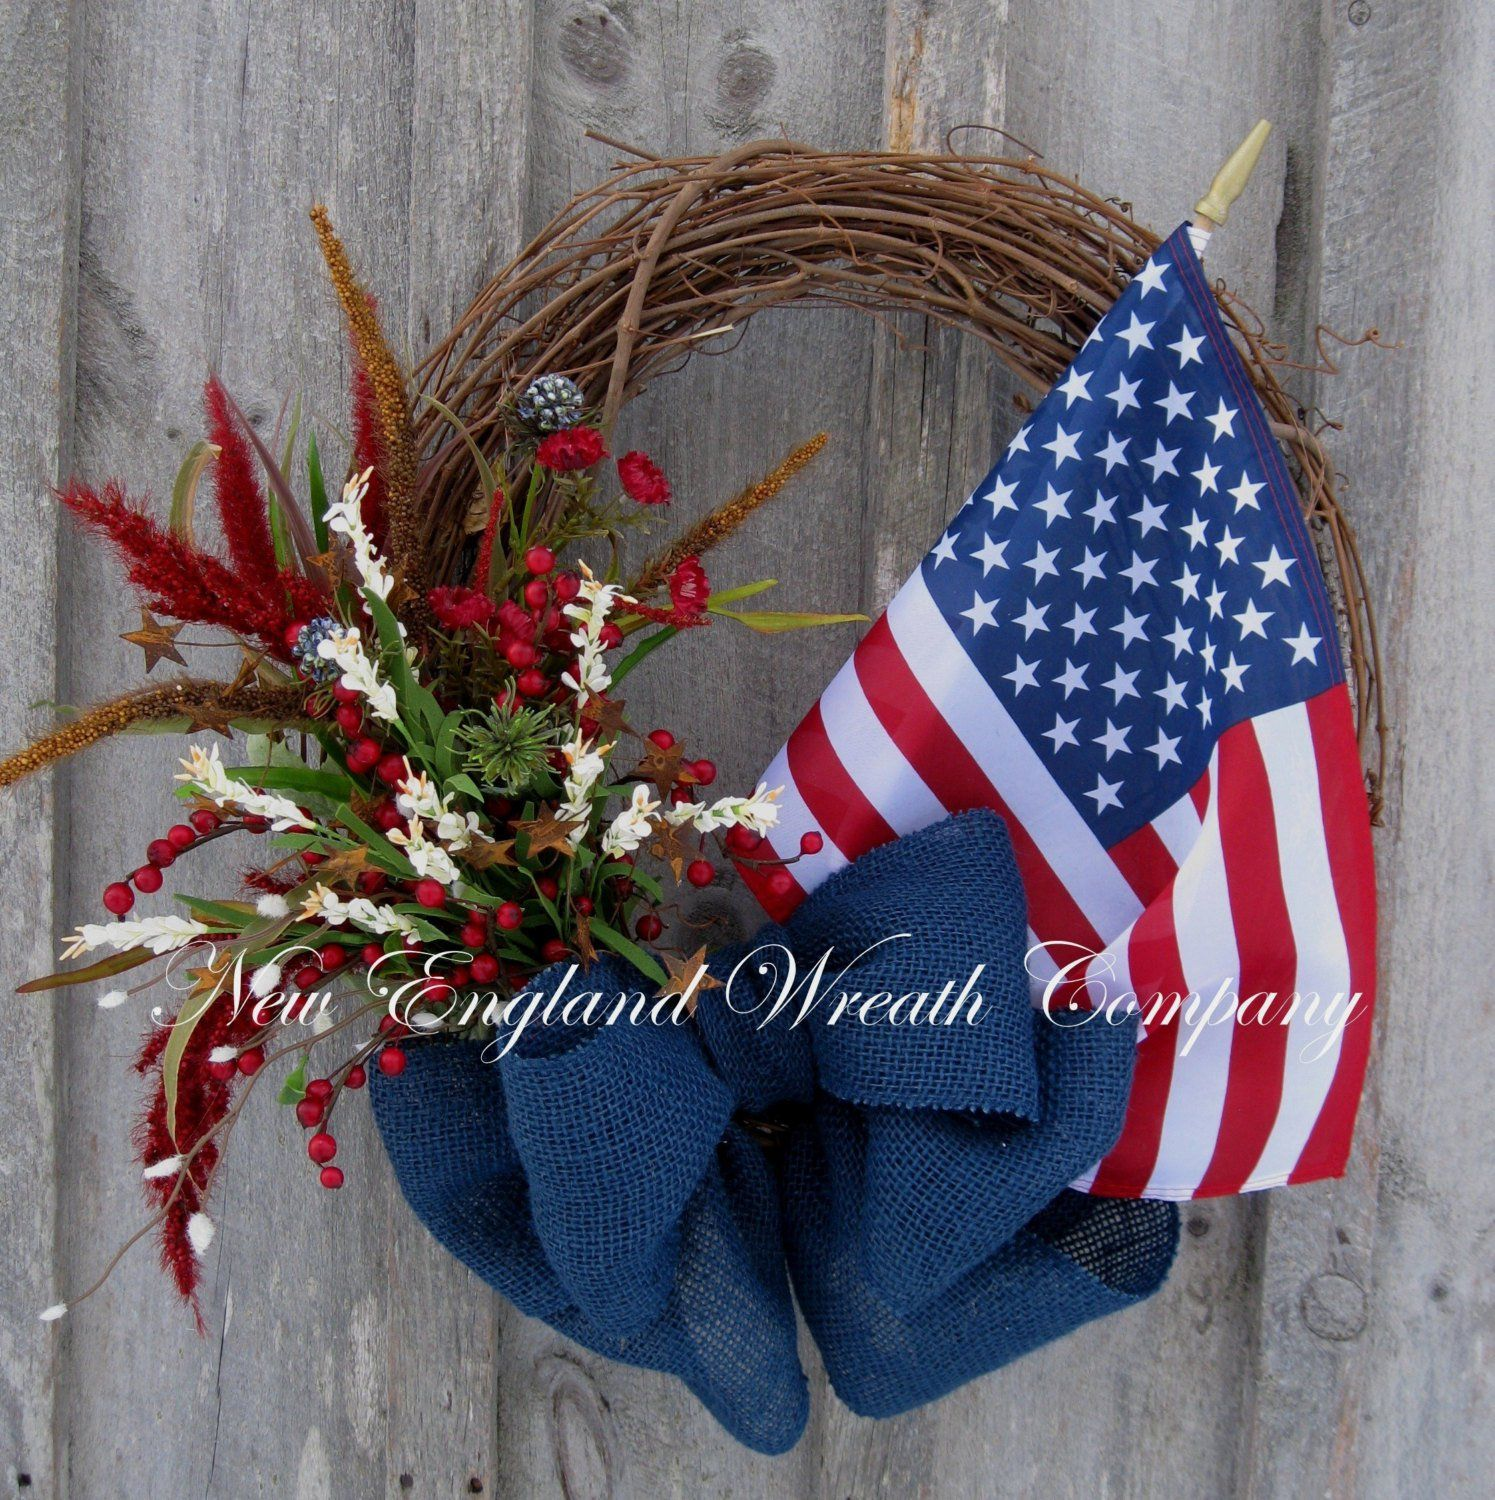 20 Awesome Handmade 4th of July Wreath Ideas | Wreaths, Holidays ...